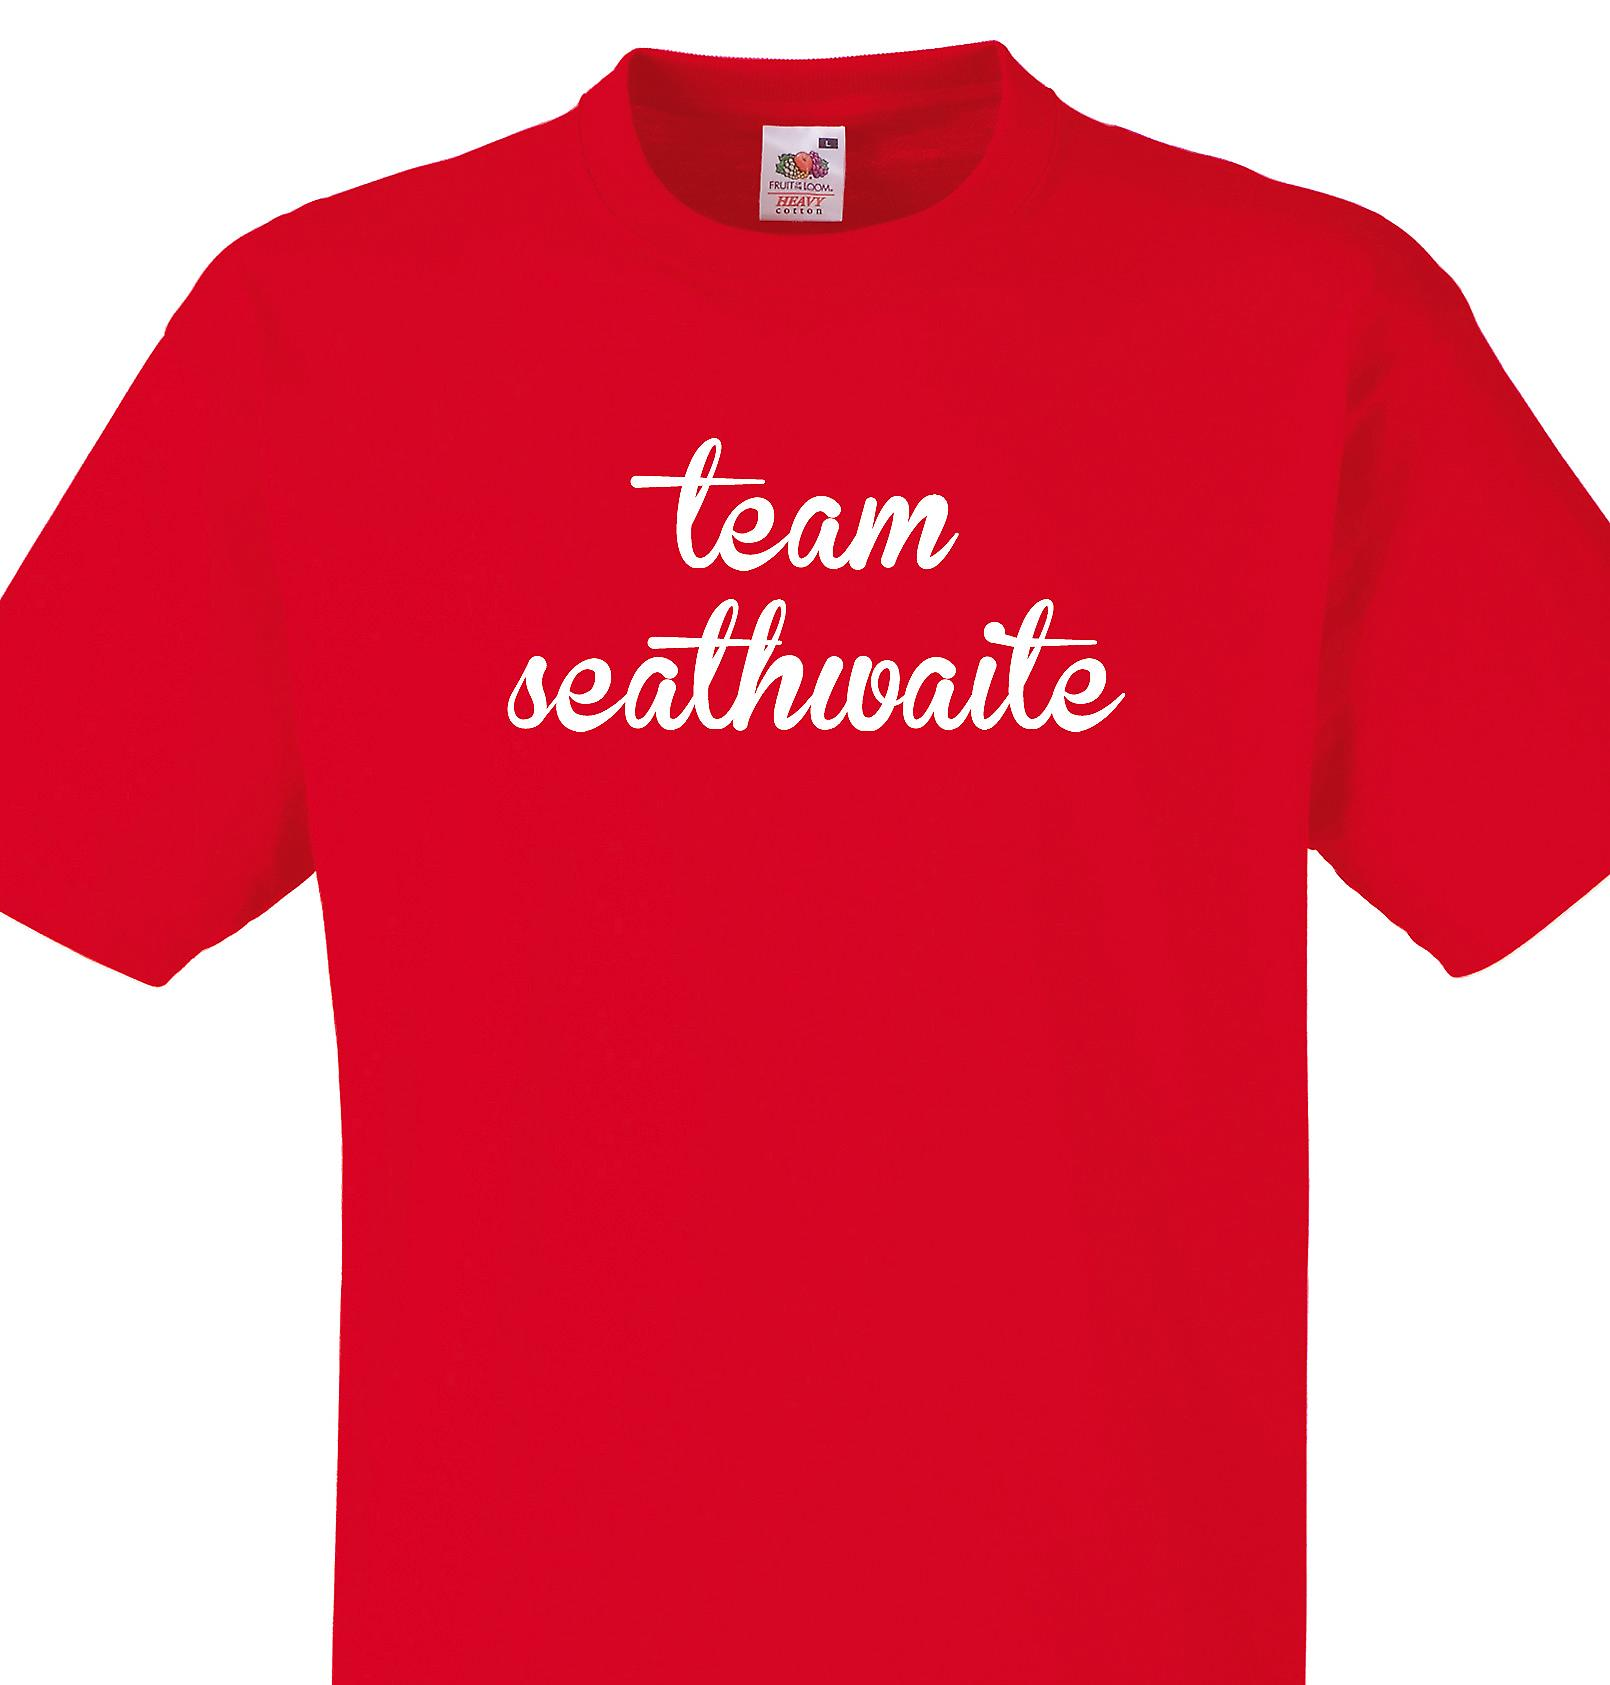 Team Seathwaite Red T shirt